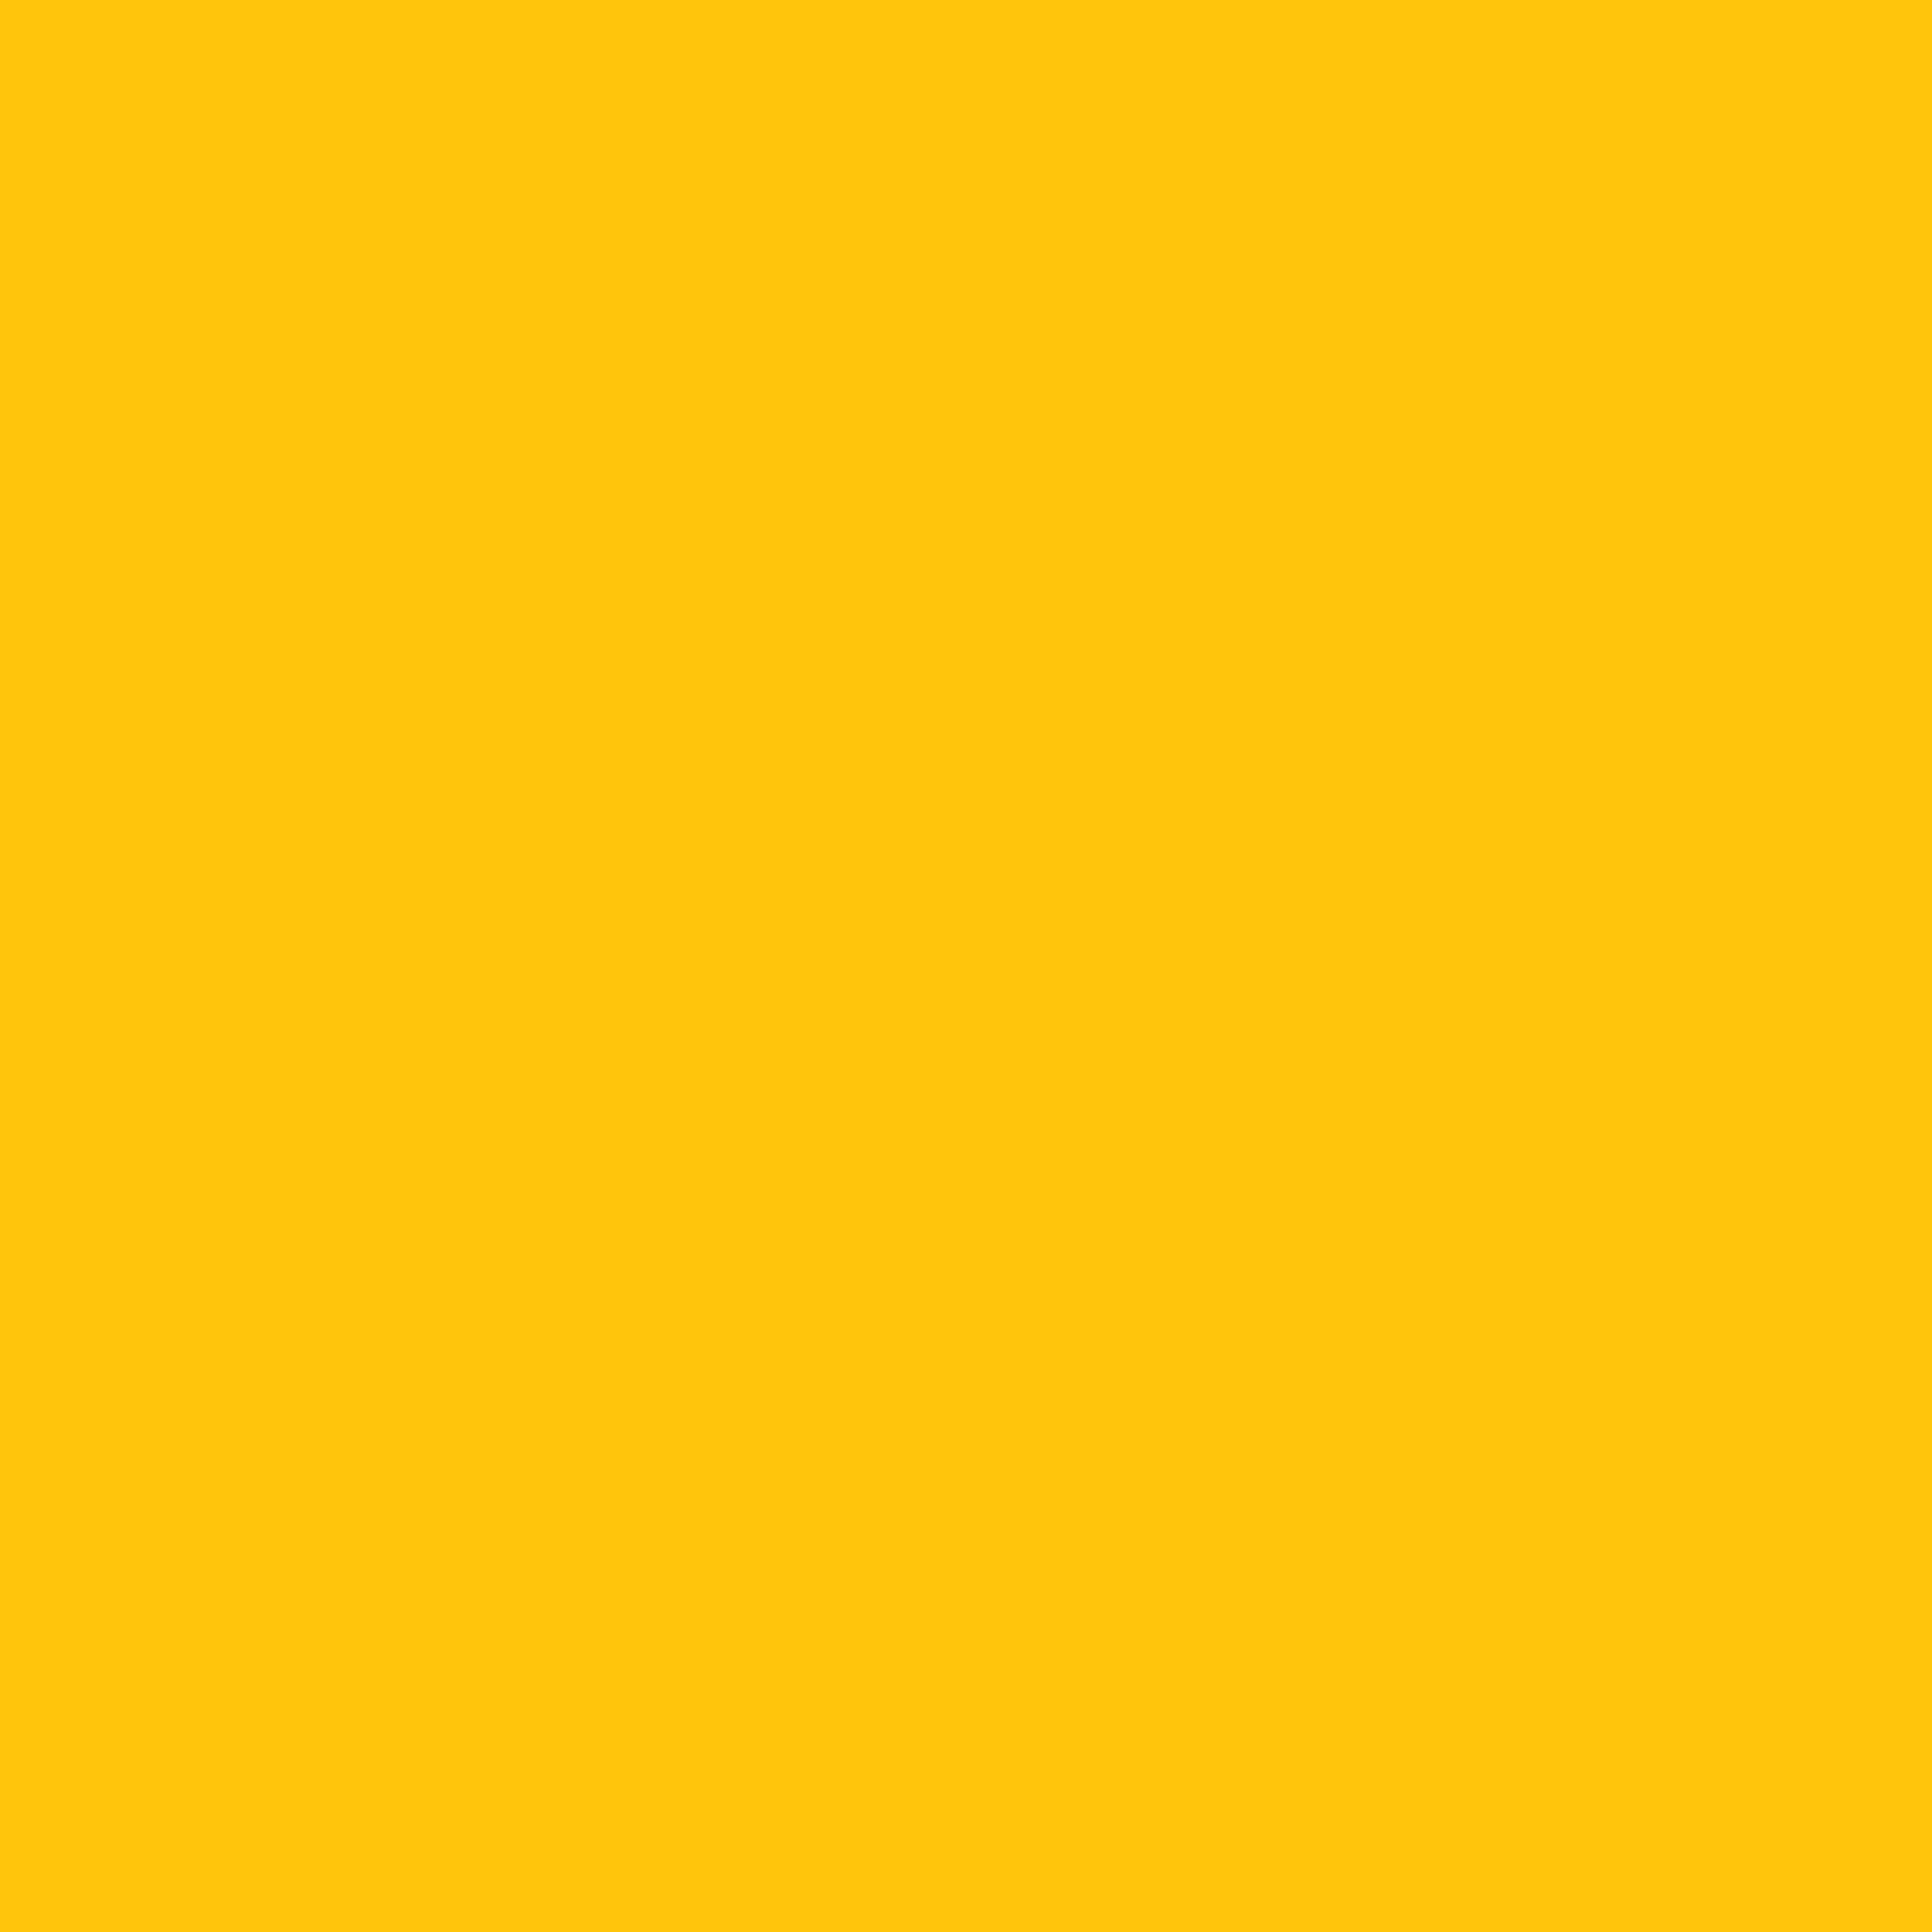 2048x2048 Mikado Yellow Solid Color Background